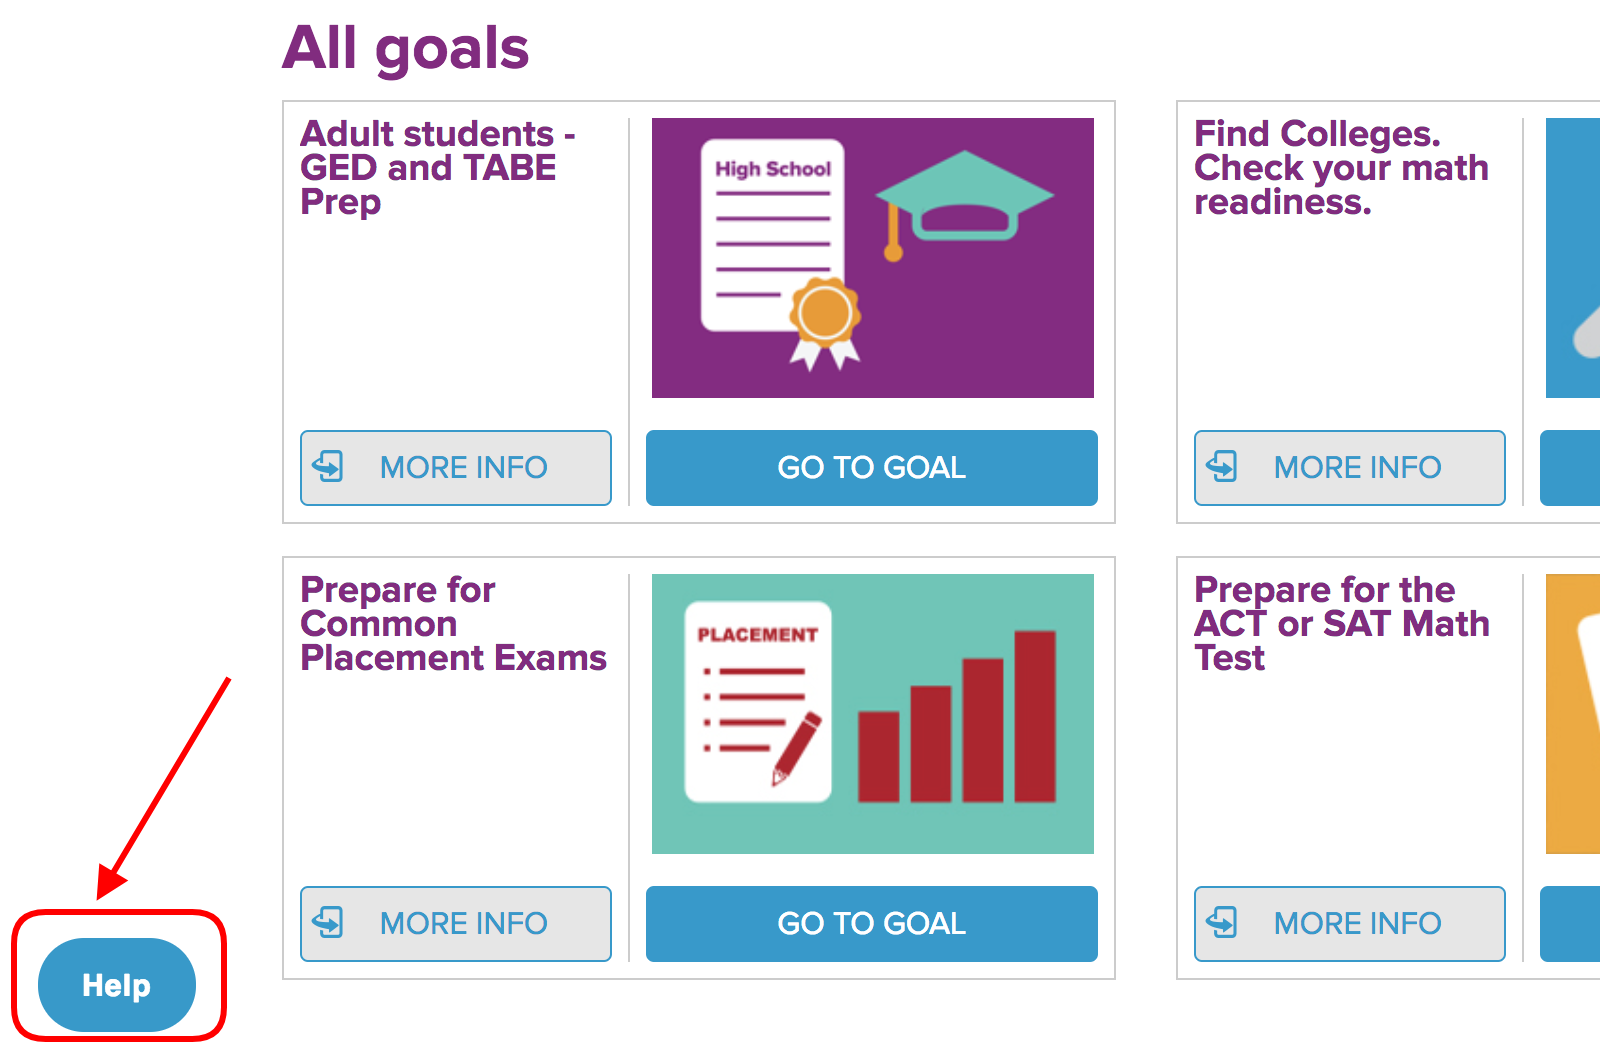 screenshot-www.edready.org-2017-12-12-09-06-38-661.png